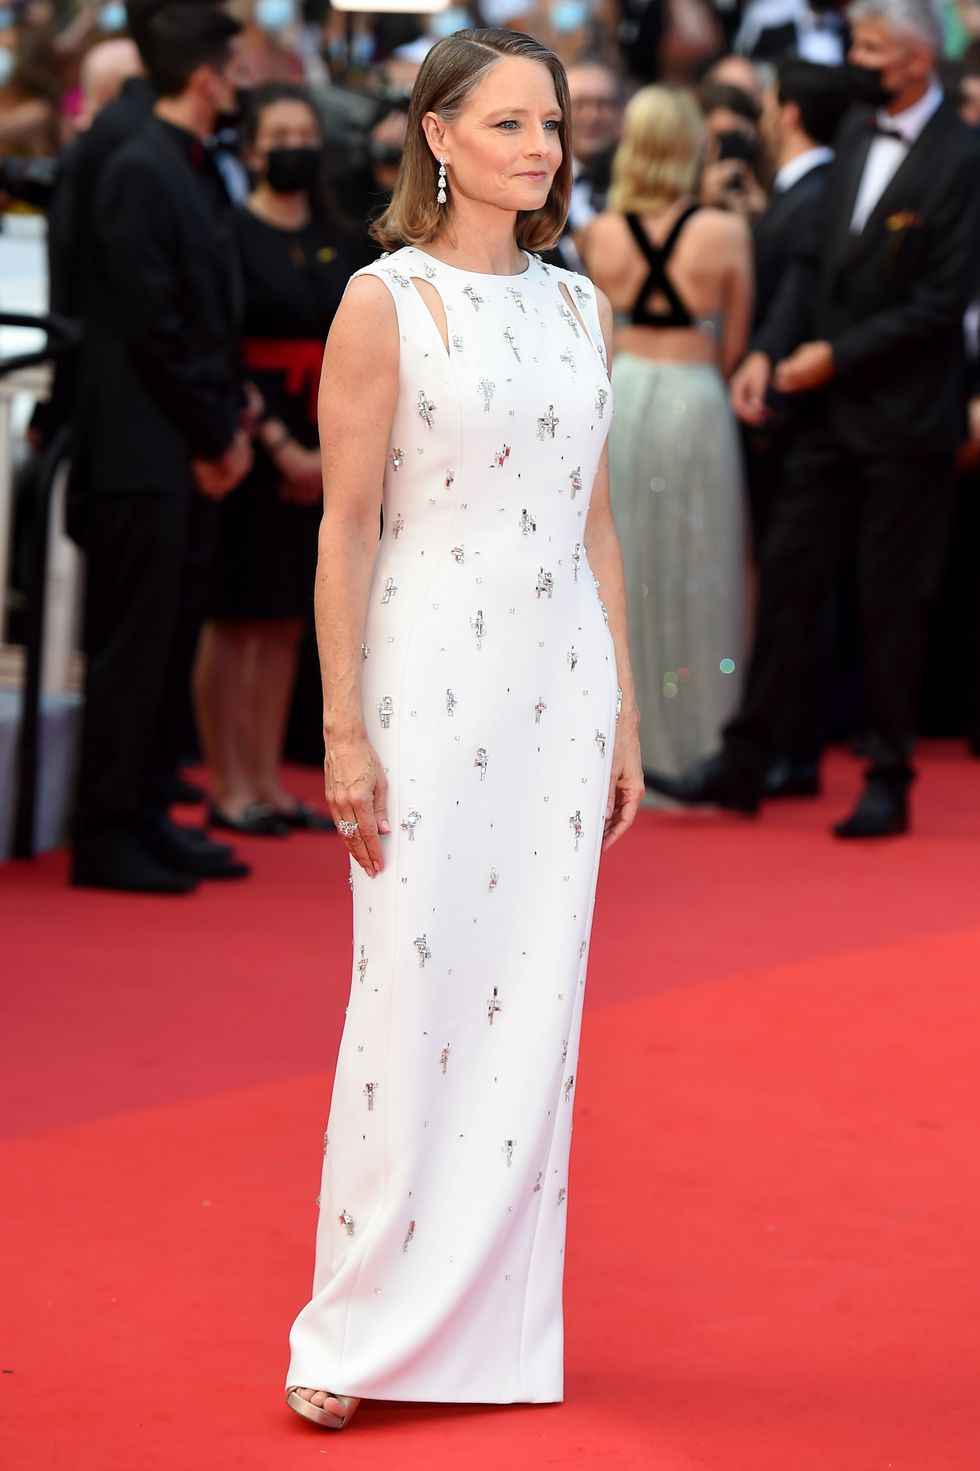 Jodie Foster Jodie Foster, this year's coveted Lifetime Achievement Award recipient, arrived wearing a Givenchy gown covered in subtle embellishments with Chopard jewellery.